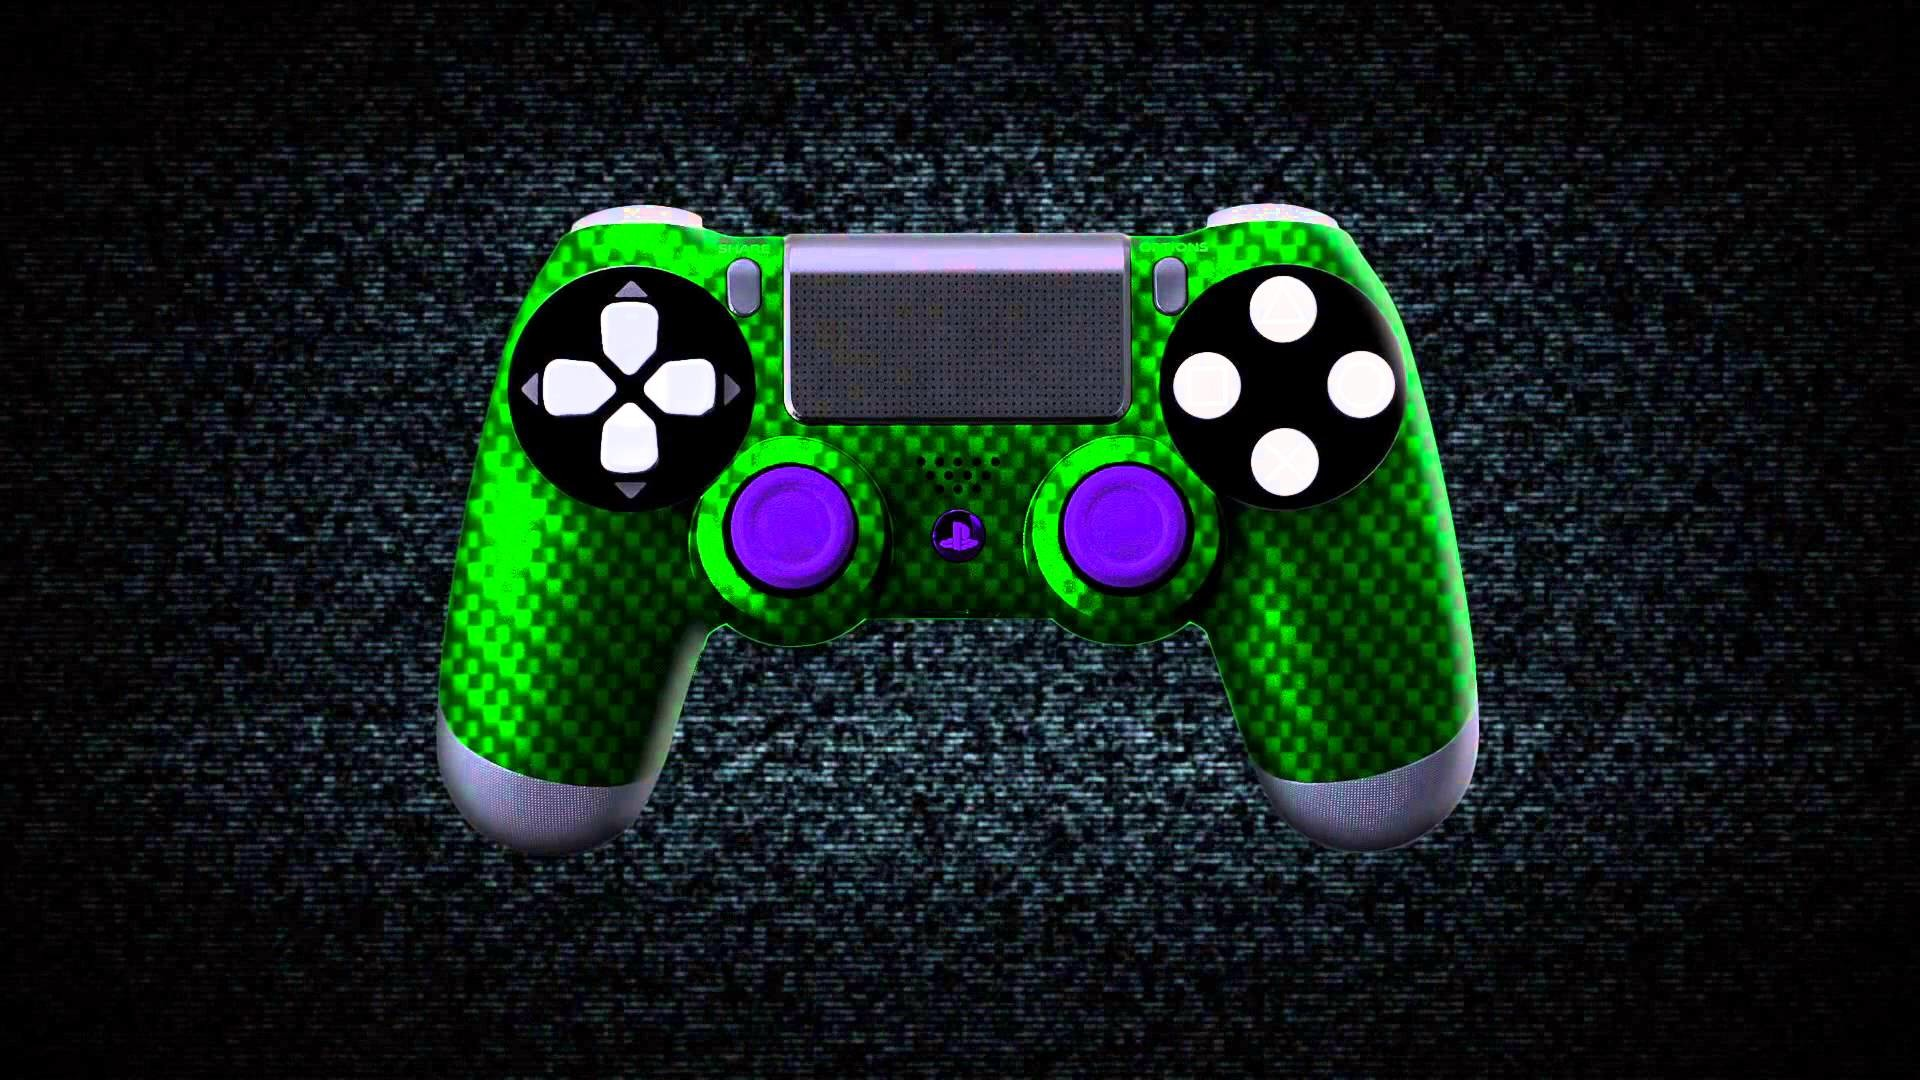 Playstation controller wallpaper 75 images - Cool ps4 wallpapers ...